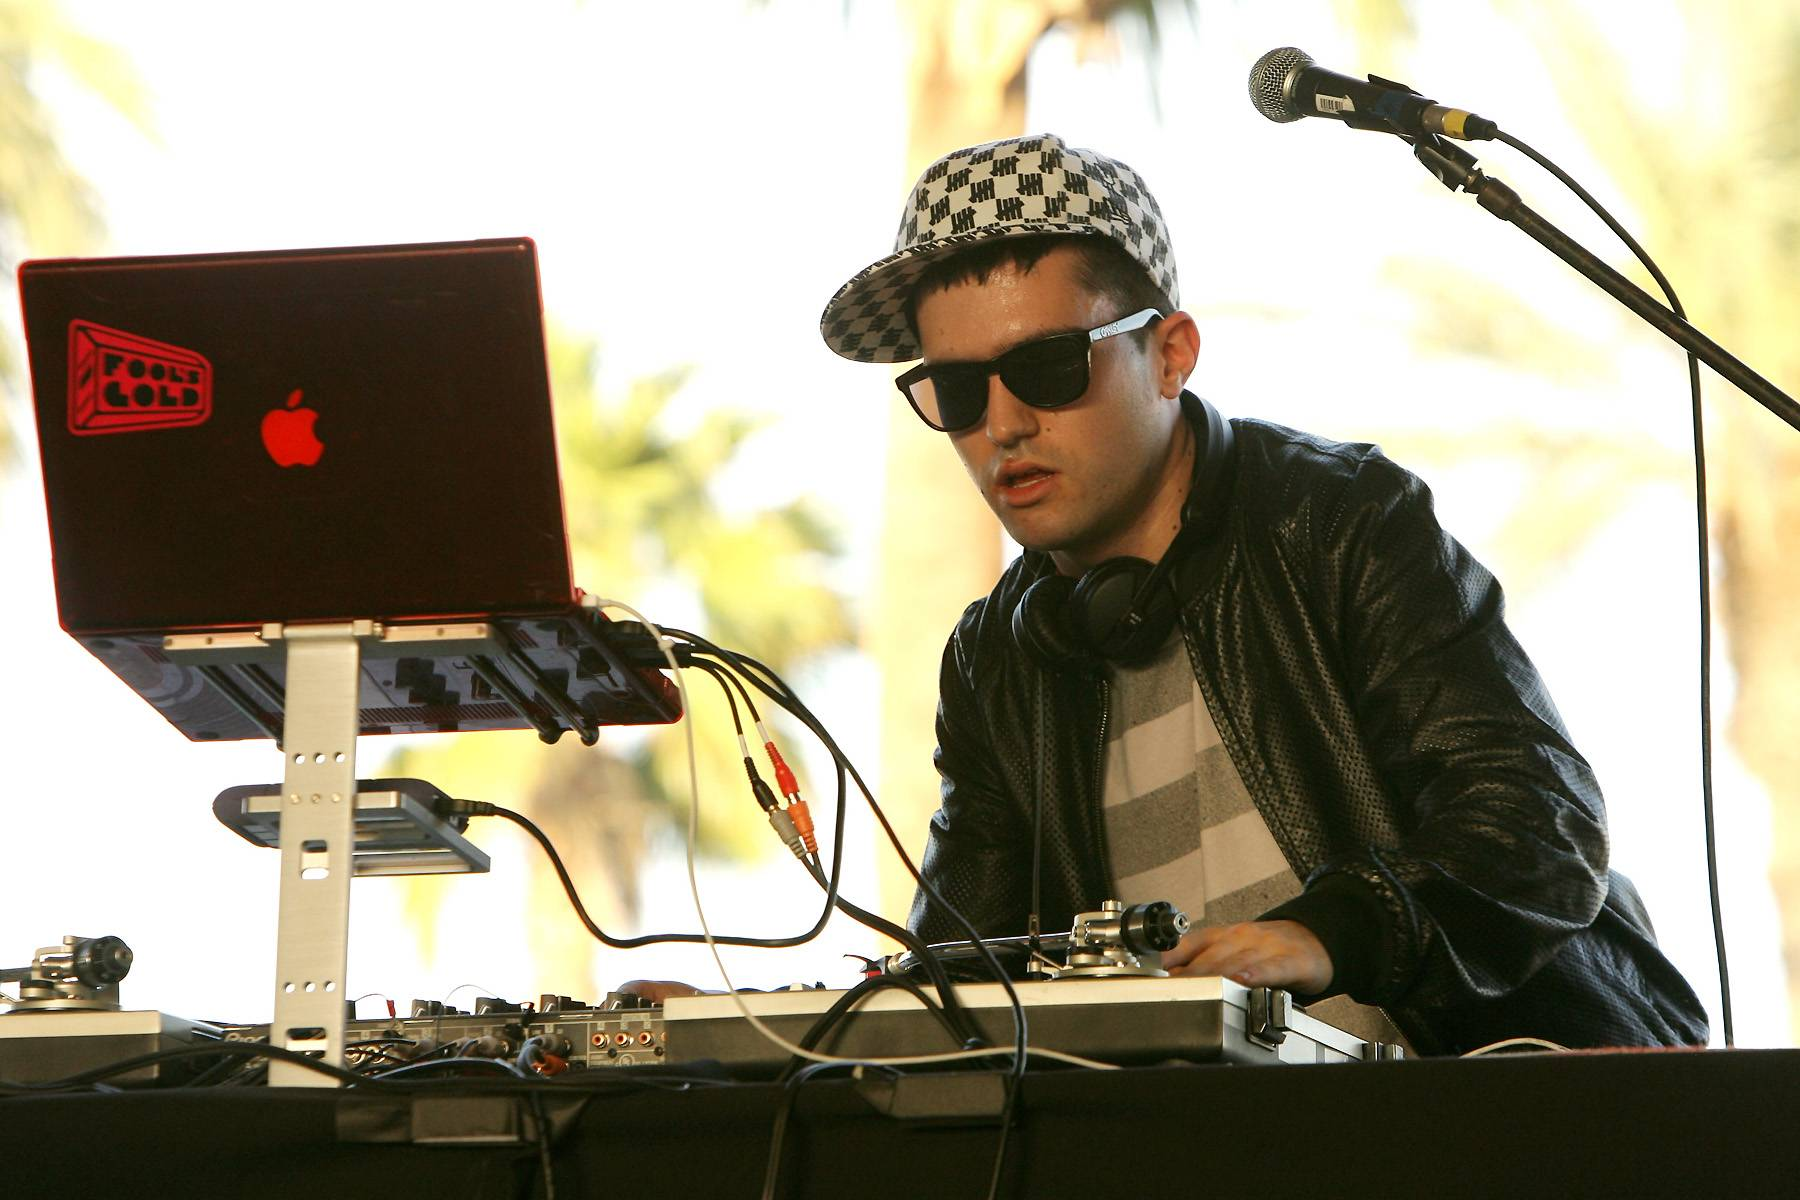 49. A-Trak - A-Trak first made his name as a turntablism wunderkind, winning the DMC DJ World Championship at just 15 years old in 1997. Later, Kanye West tapped Trak to be his personal DJ, rocking the tables on his Late Registration and Graduation albums. Then in 2008, after becoming a force on the growing dance-music circuit, he founded Fool's Gold Records, the influential taste-making indie that broke acts like Kid Cudi, Danny Brown and Kid Sister.  (Photo: Karl Walter/Getty Images)